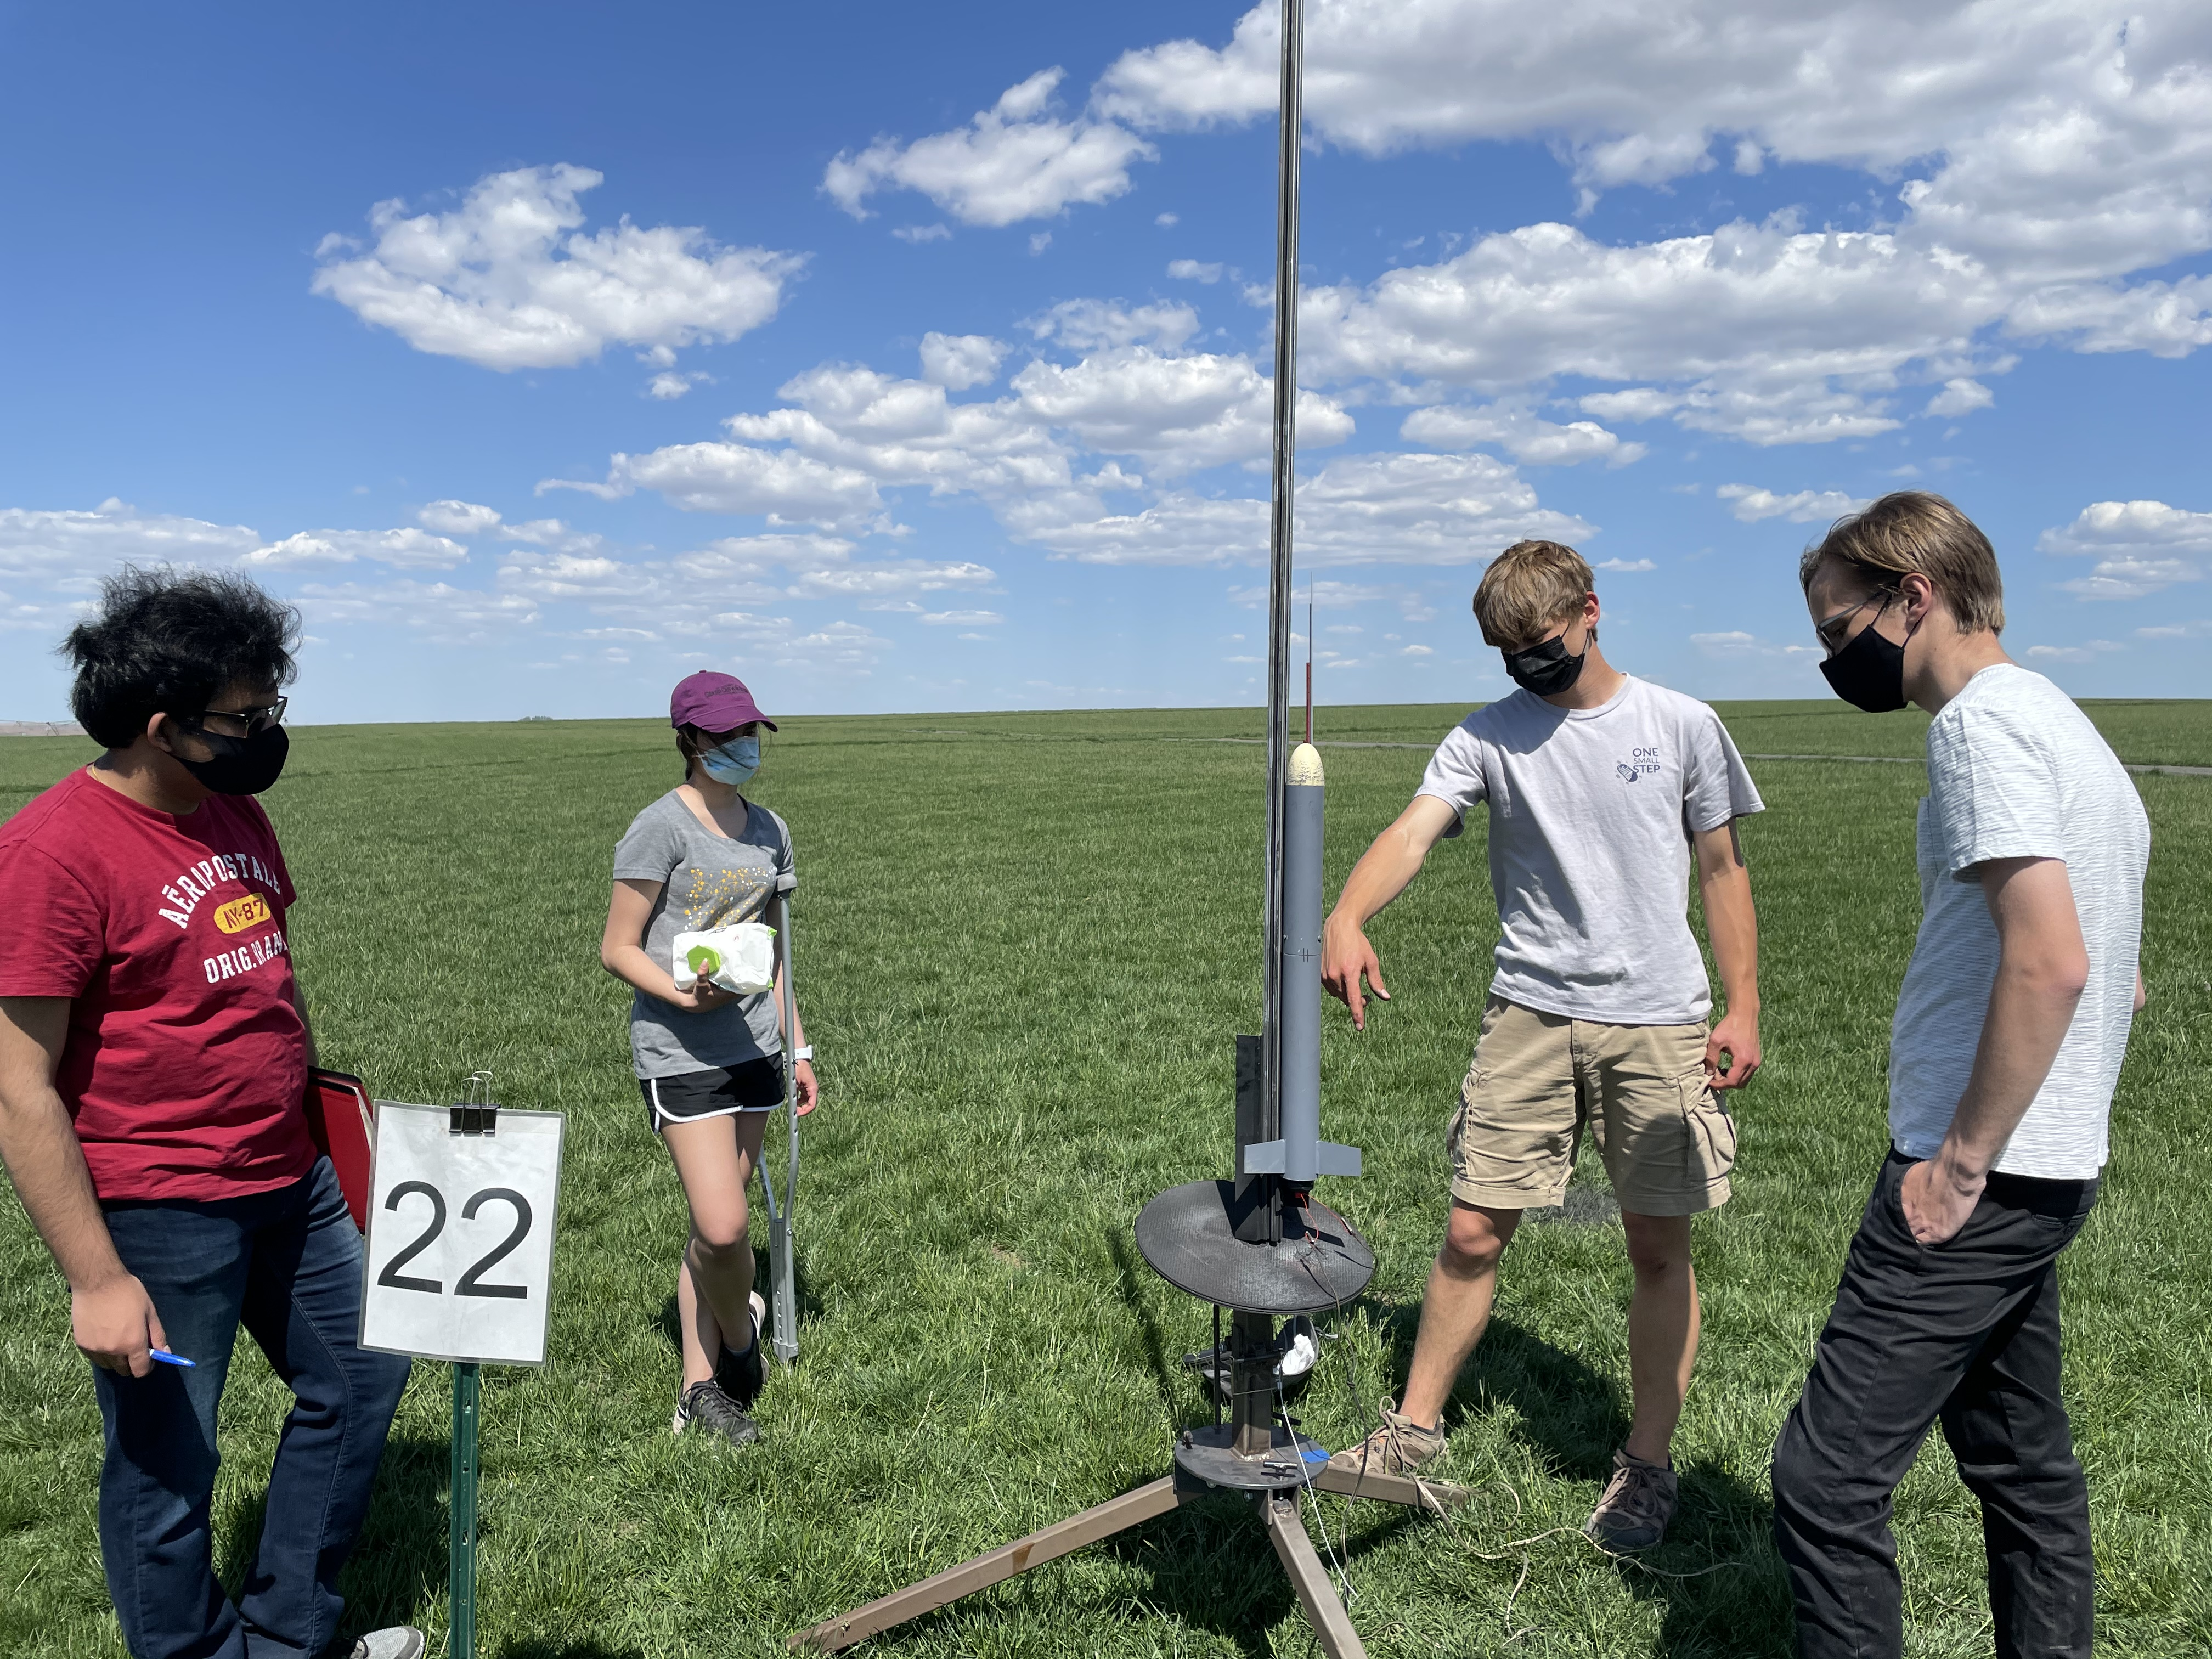 Seattle-area students fly high again as 6 teams compete in the American Rocketry Challenge